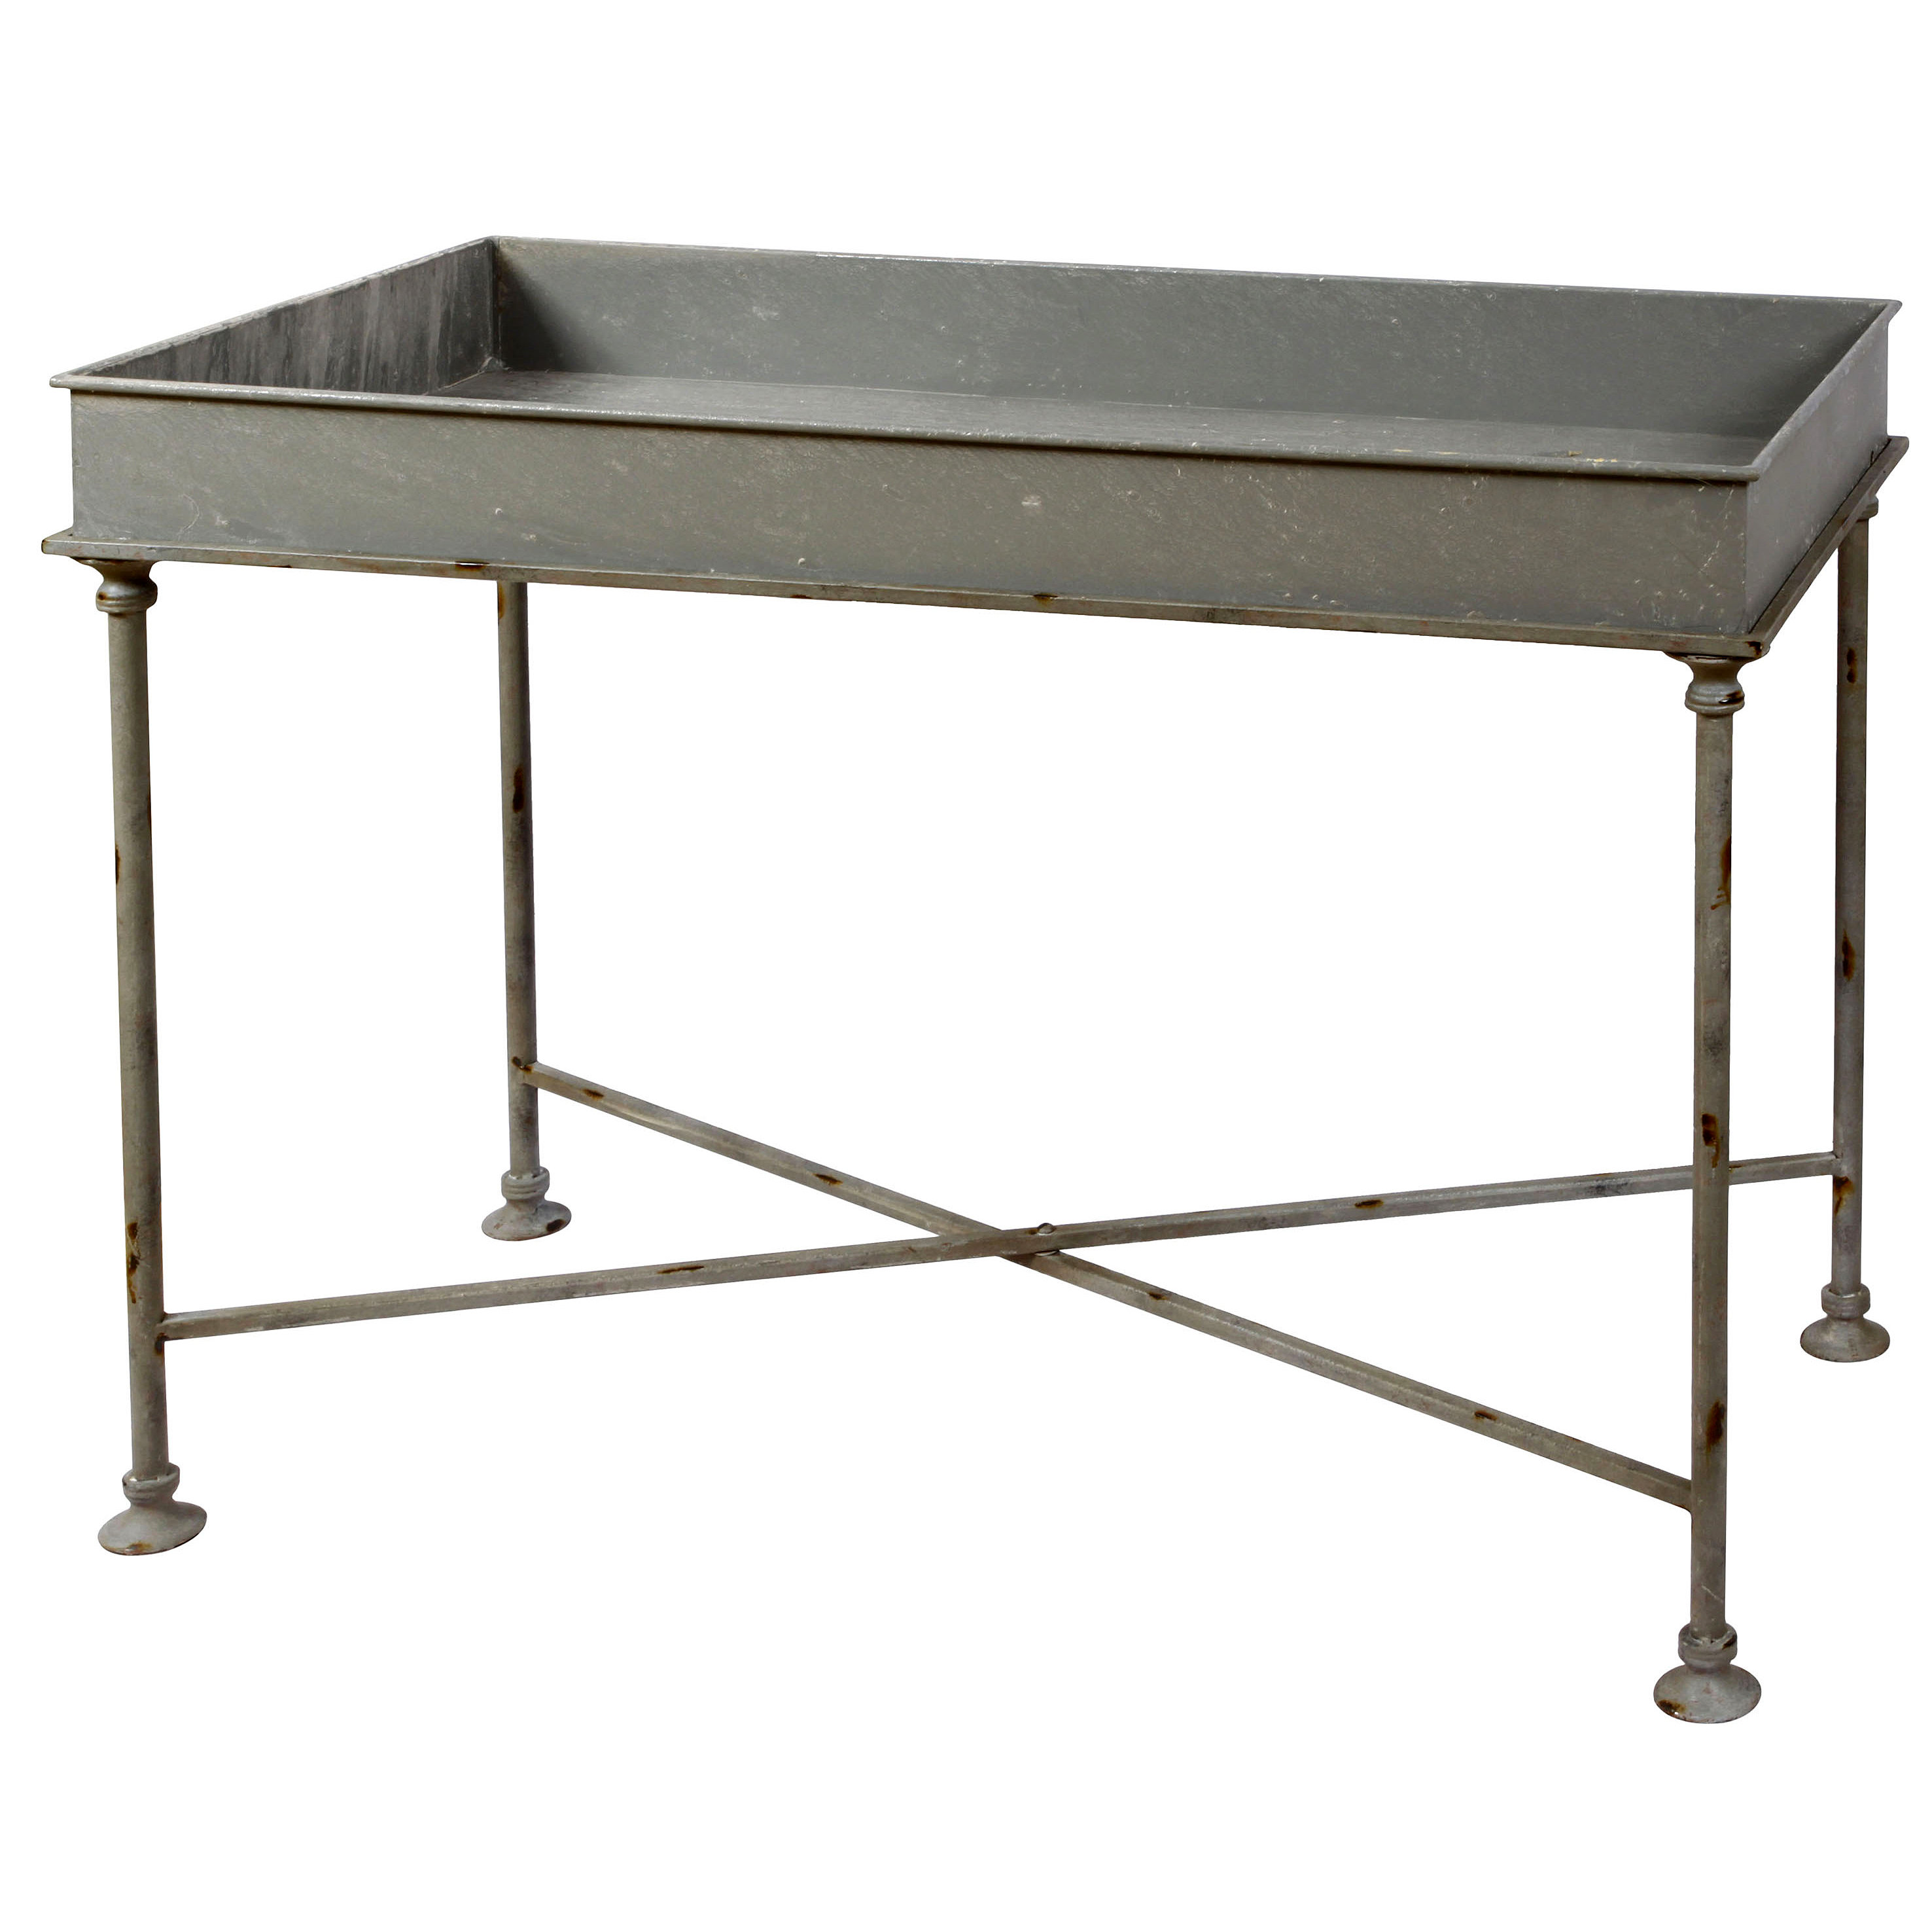 winward silks galvanized tray table metal accent demilune console tablecloth concrete look outdoor furniture end tables with storage white coffee hobby lobby mirrors rectangular